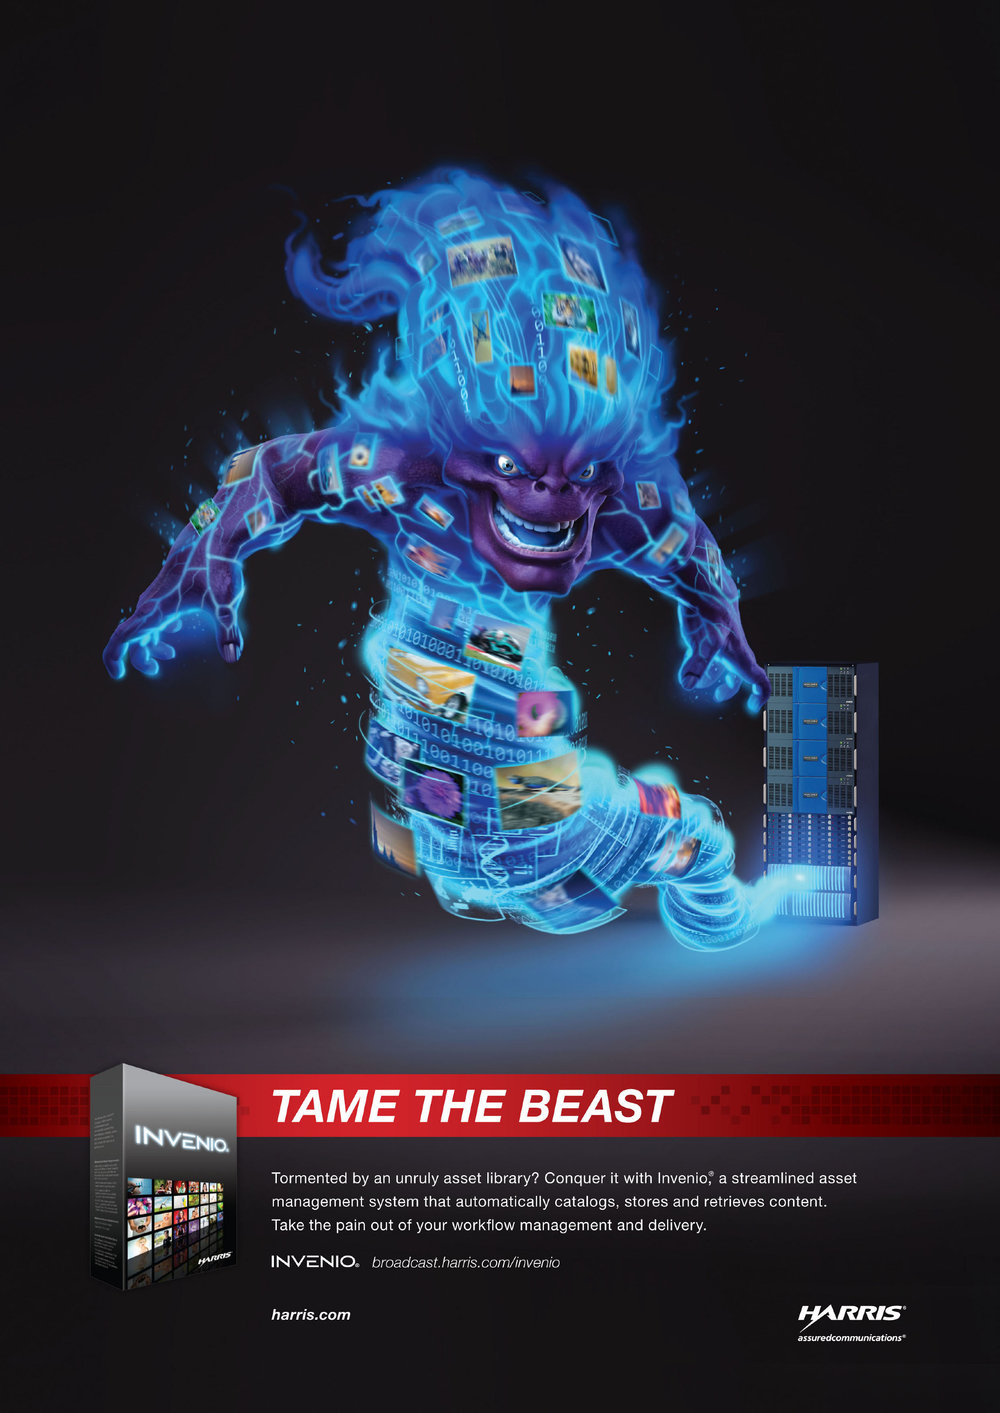 Harris-Broadcast-Invenio-Data-Beast-5.jpg